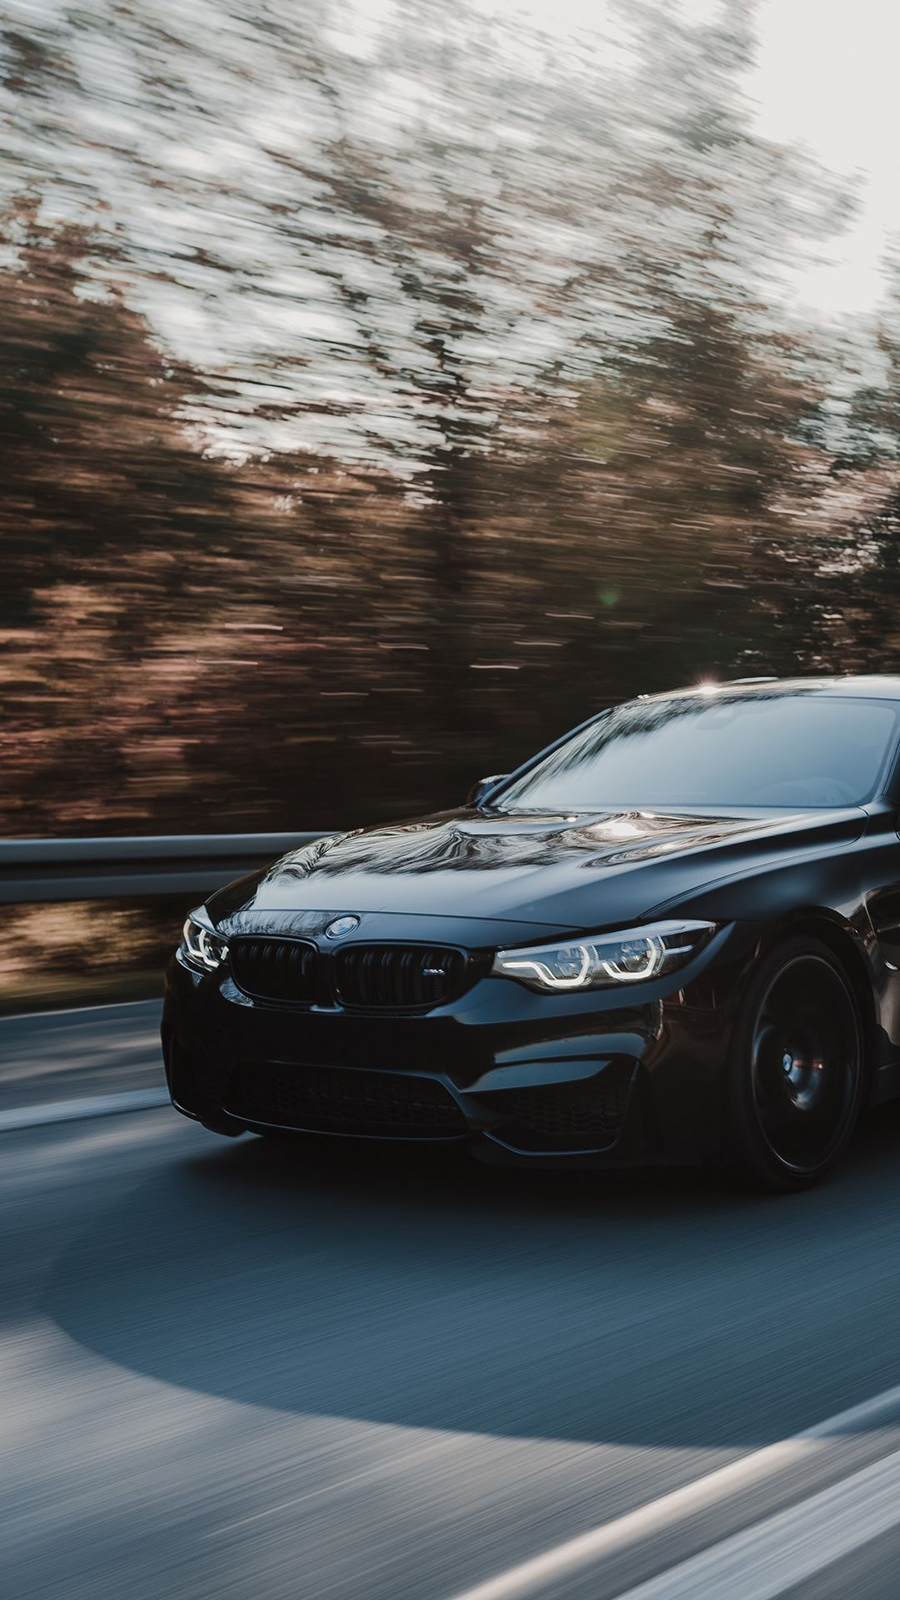 BMW, Dark Car, Wallpapers Free Download For Mobile